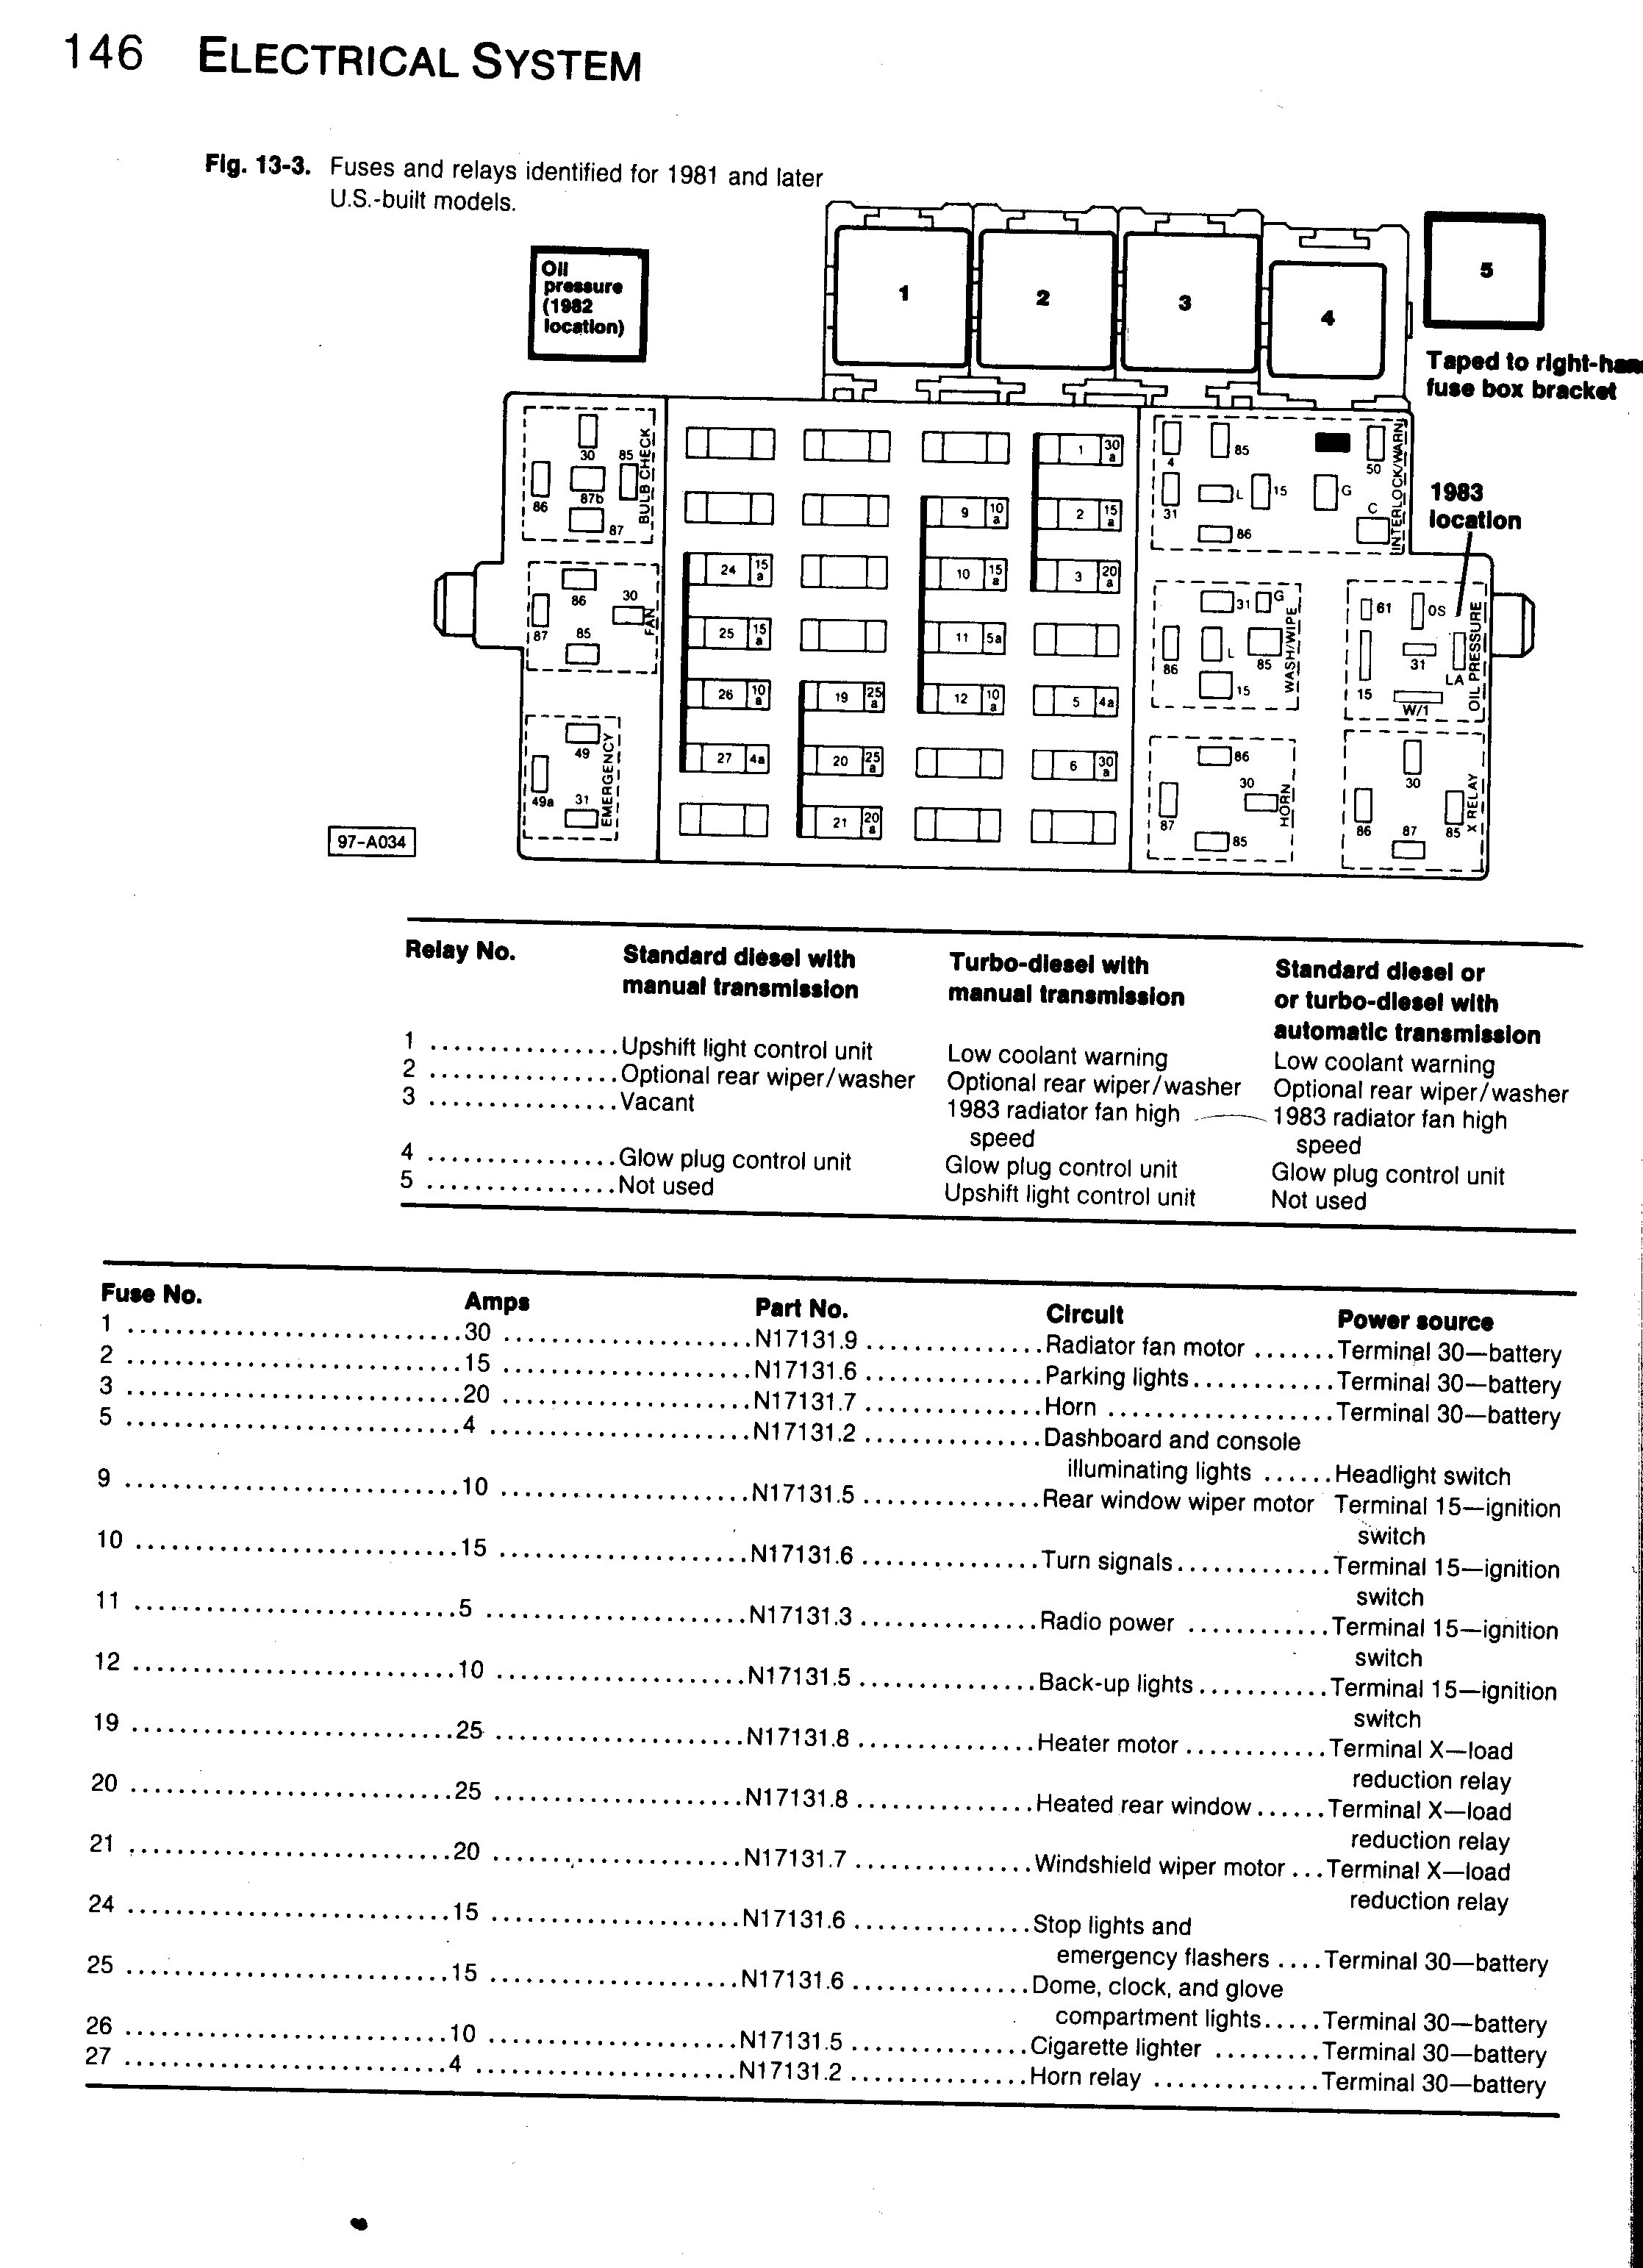 2001 F250 Diesel Fuse Panel Diagram Wiring Library 2004 Box